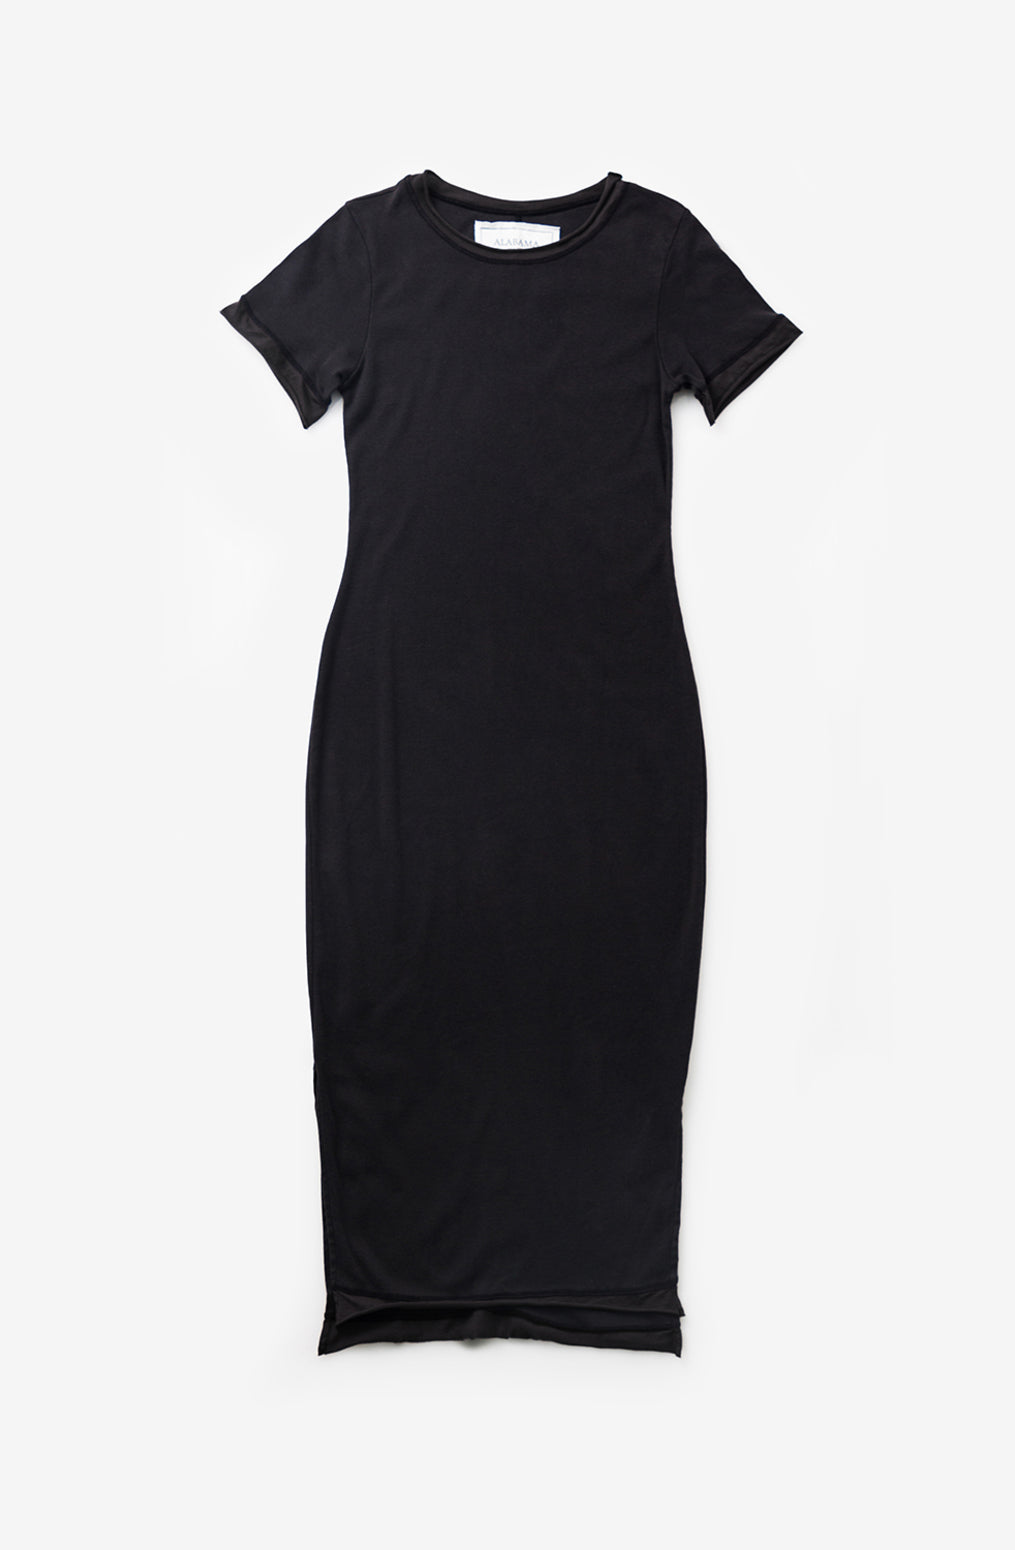 Alabama Chanin Organic Cotton Lightweight Rib Dress in Black with Short Sleeves and Side Slits